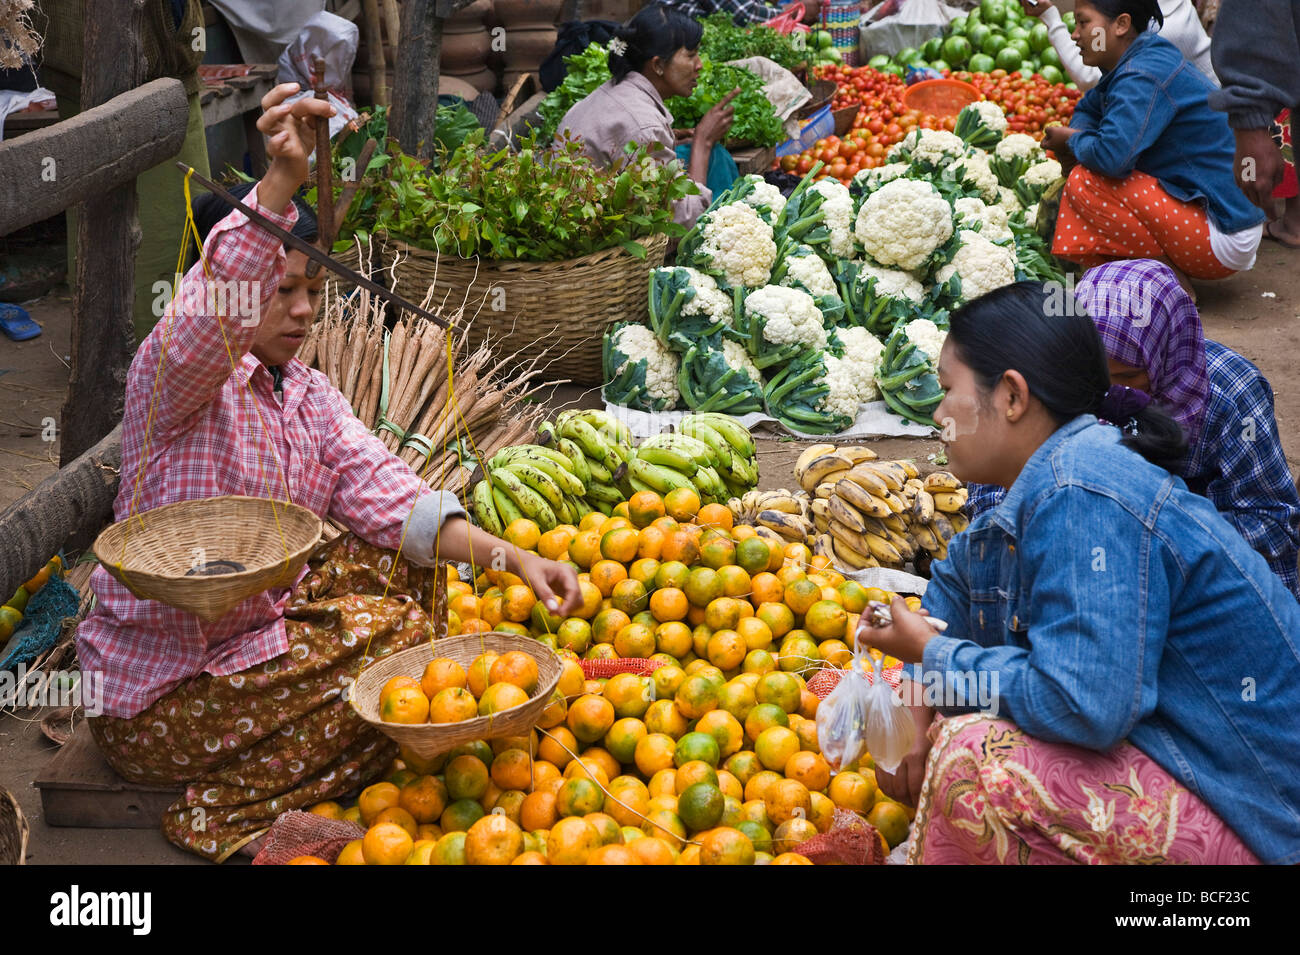 Myanmar. Burma. Nyaung U. A busy market scene with fresh fruit and vegetables at Nyaung U. - Stock Image